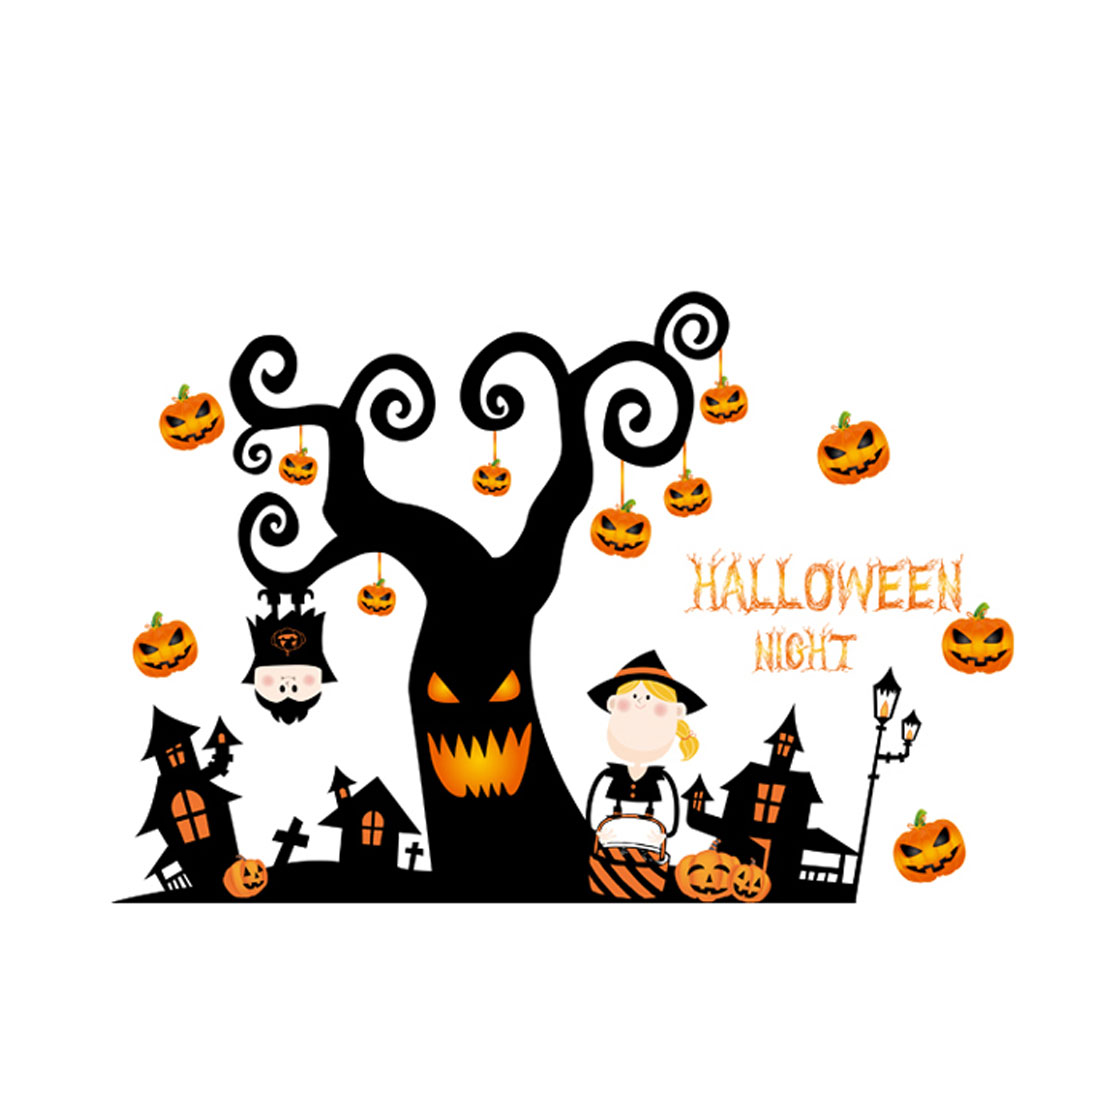 Home PVC Pumpkin Tree Print Halloween Decoration Wall Sticker Decal Orange Black